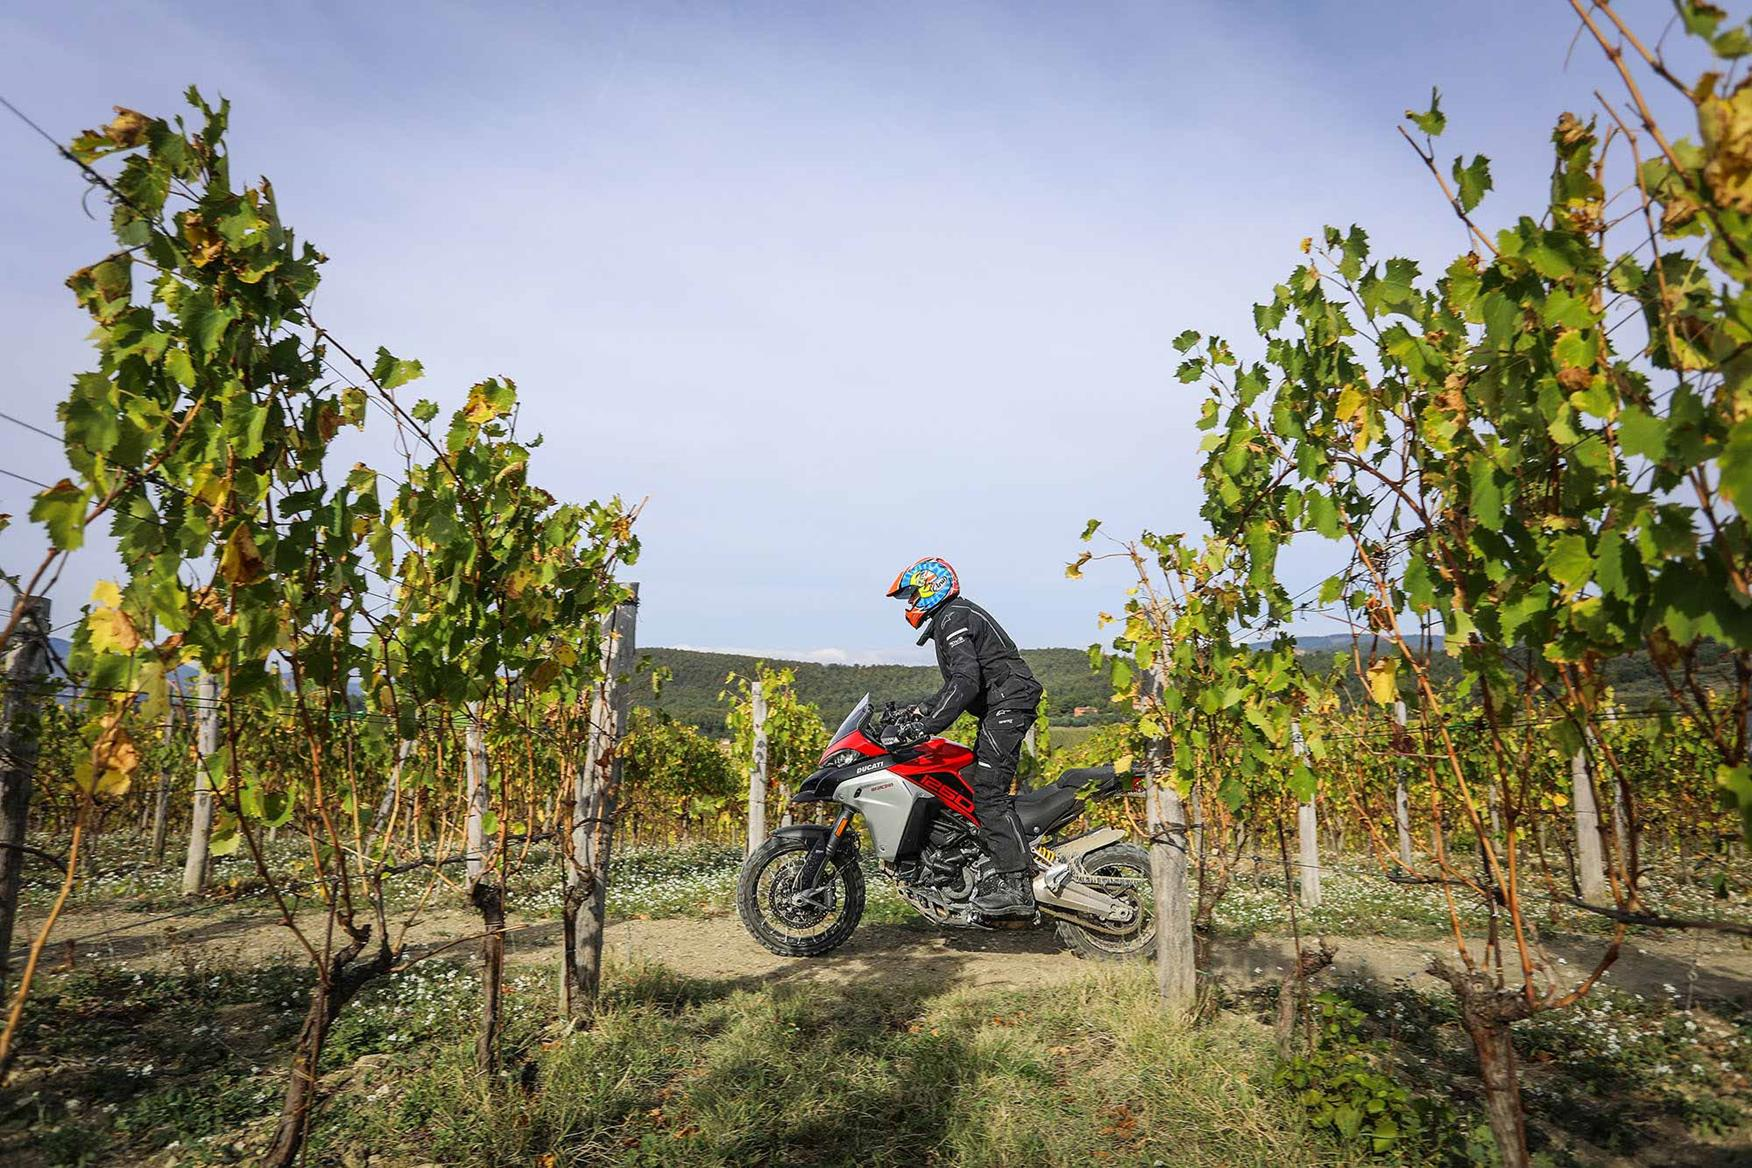 The Enduro is capable both on and off-road